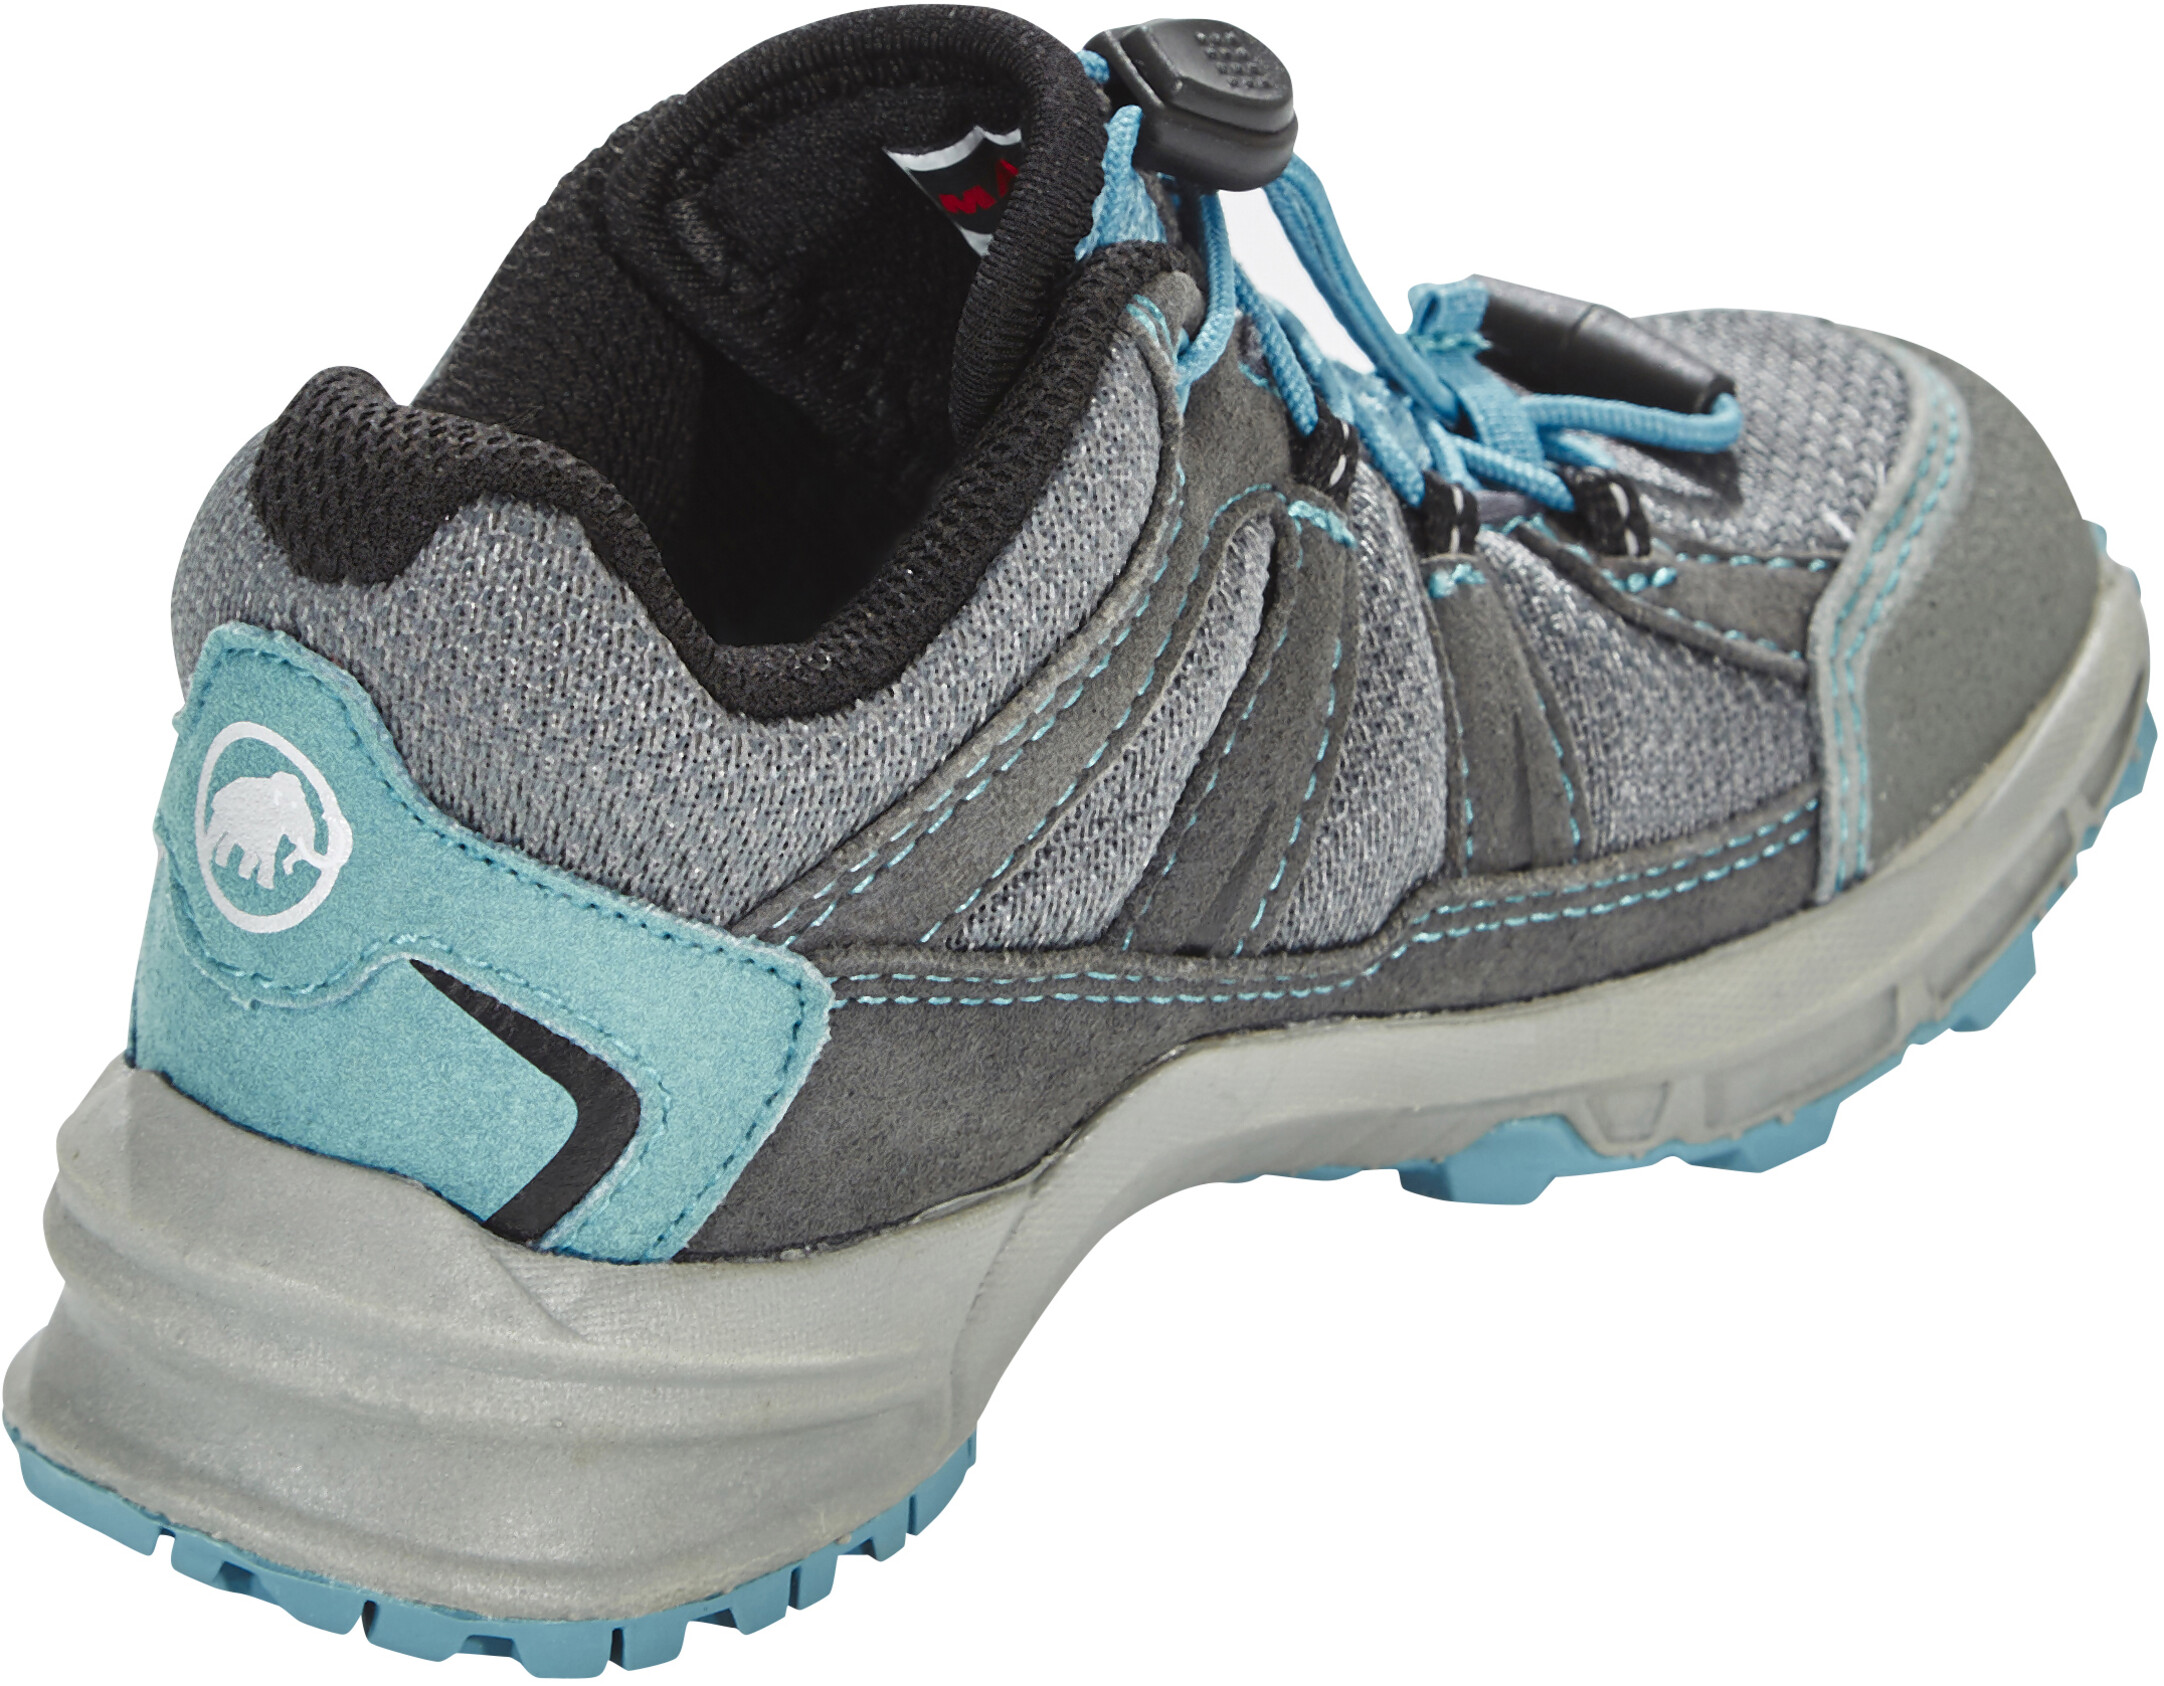 8c1dc7d2321 Mammut First Low GTX Shoes Children grey blue at Addnature.co.uk